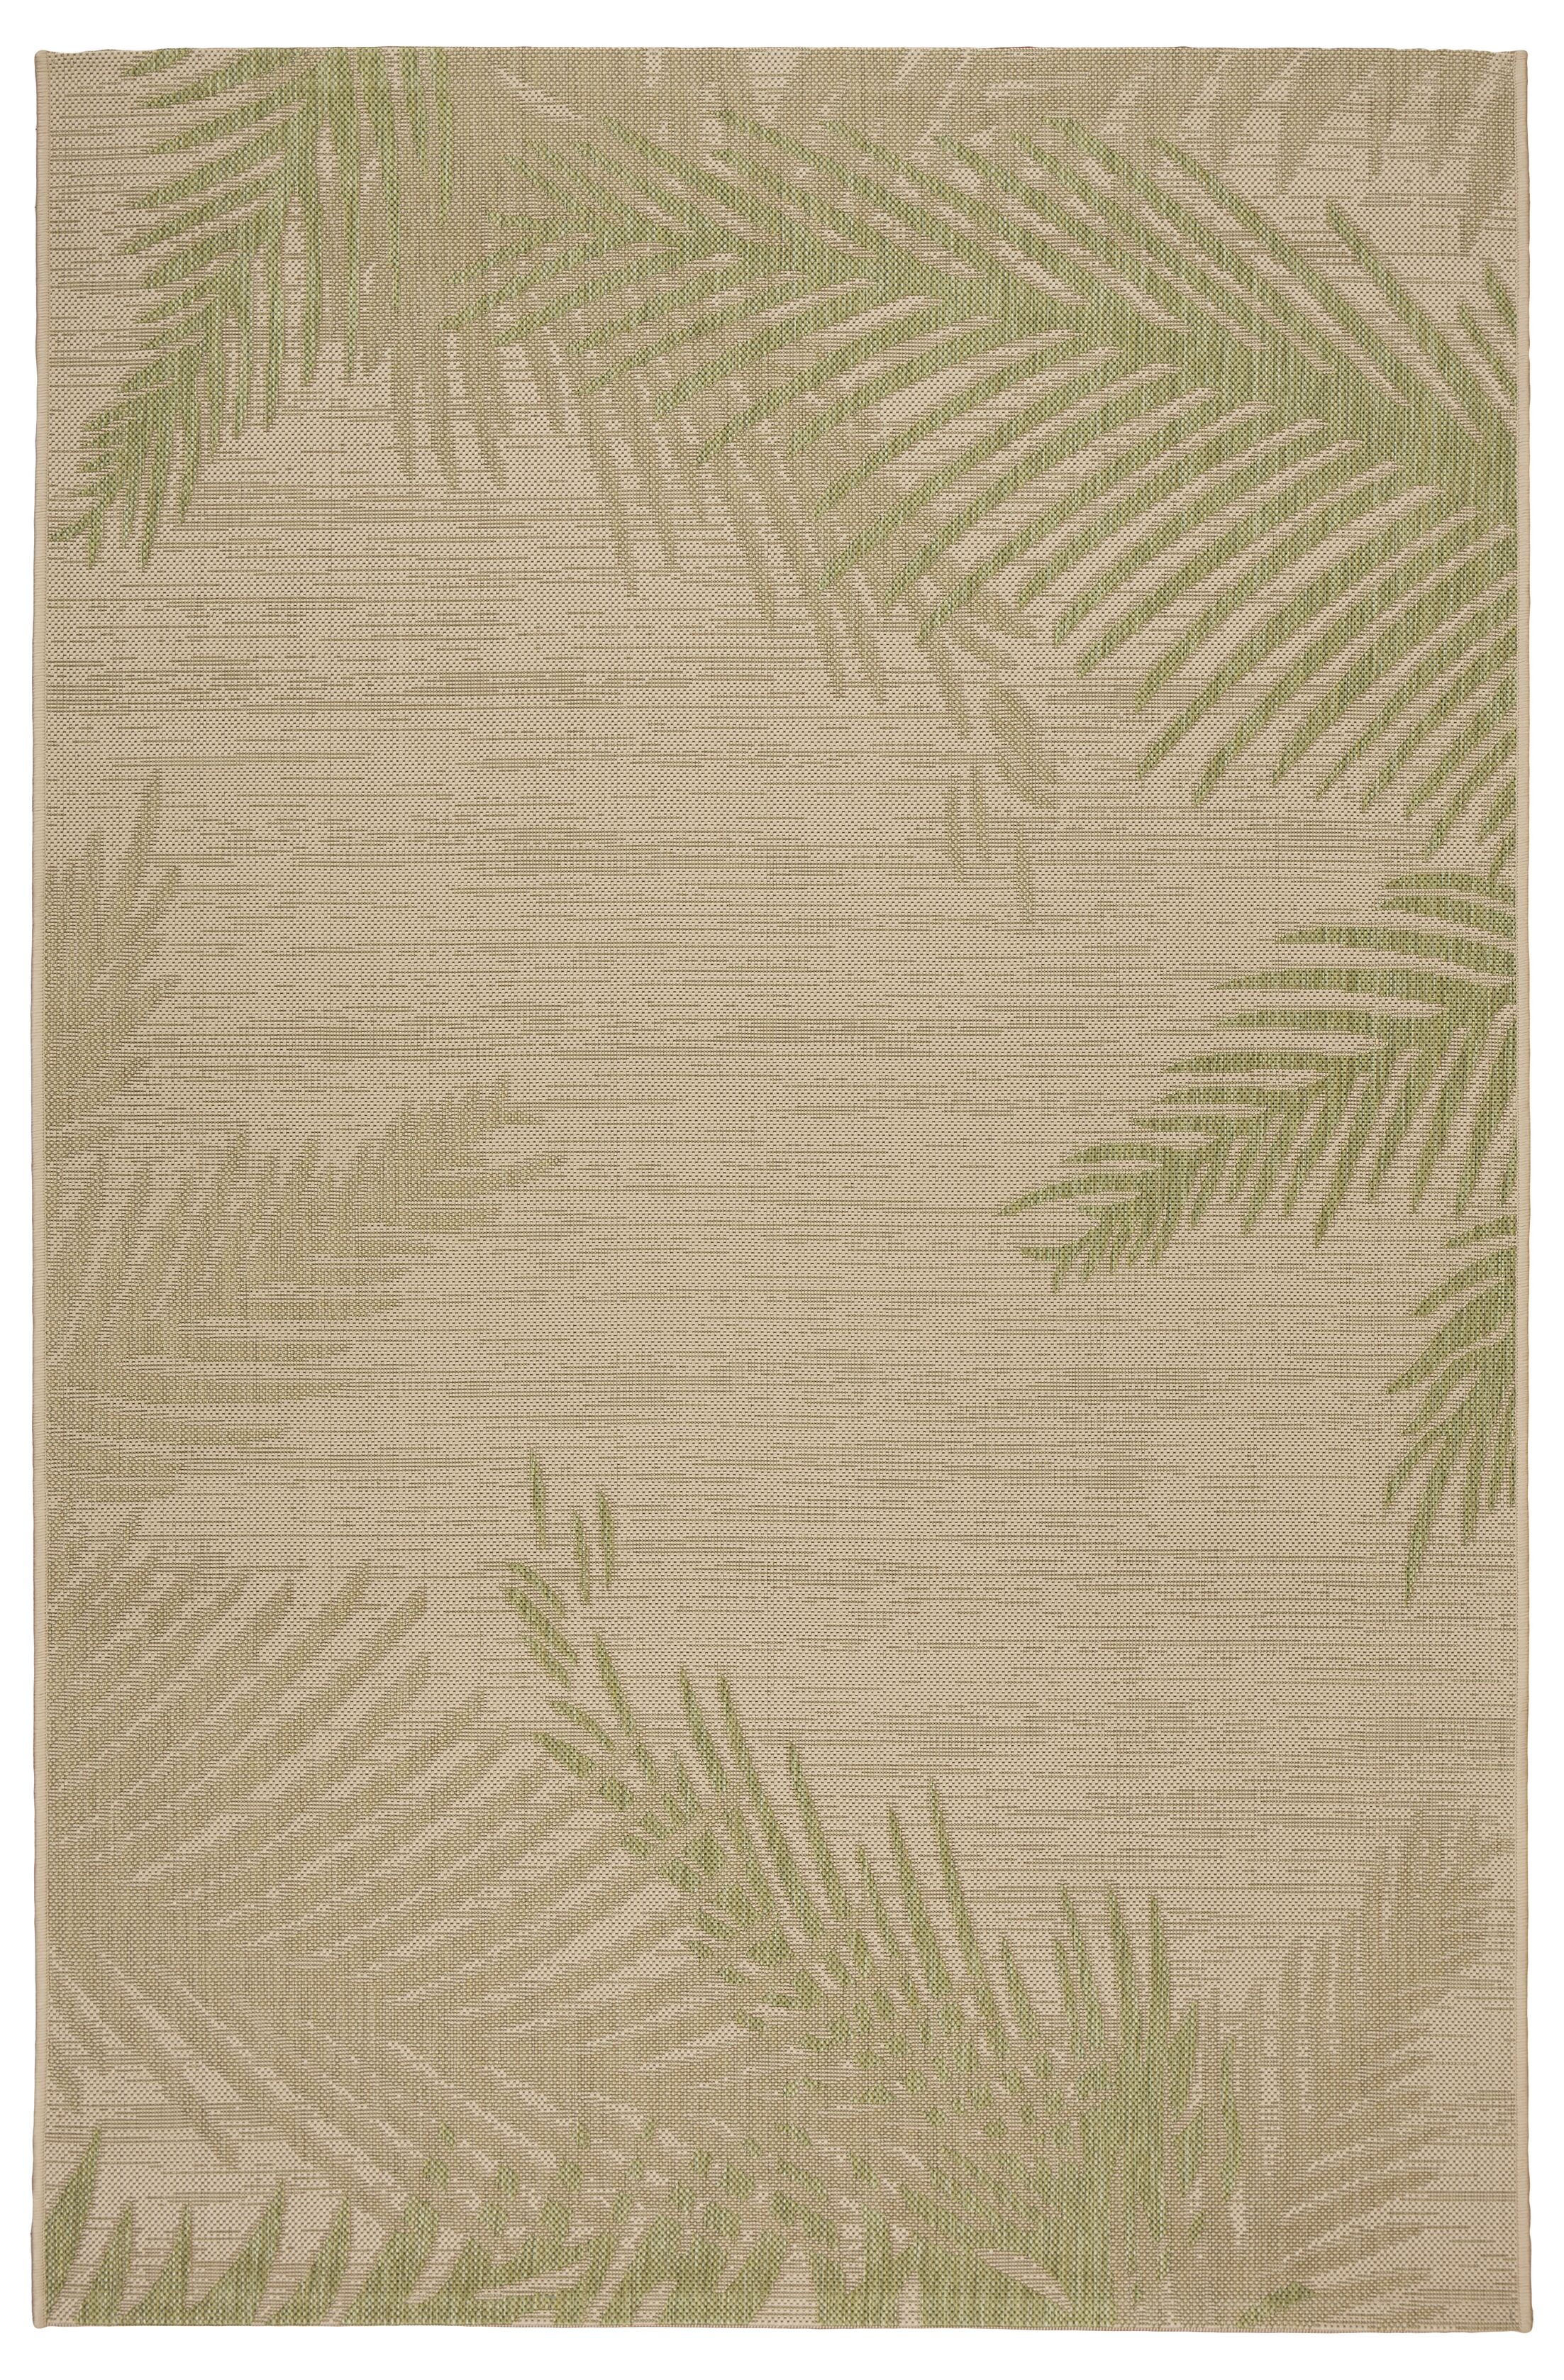 Weilers Verdant Palms Beige/Green Indoor/Outdoor Area Rug Rug Size: Rectangle 7'9